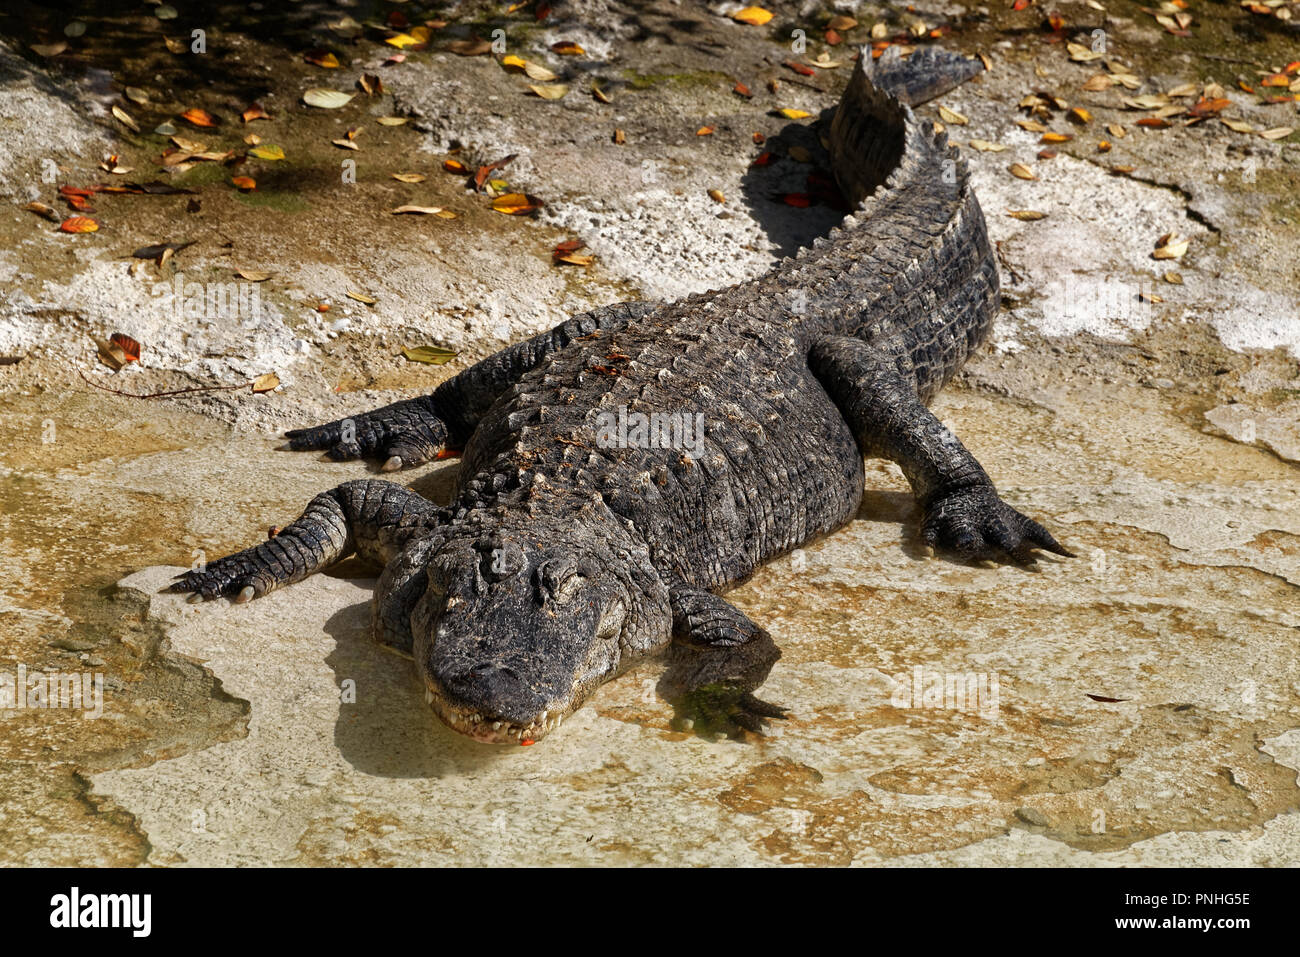 The American alligator (Alligator mississippiensis), sometimes referred to colloquially as a gator or common alligator, is a large crocodilian reptile - Stock Image